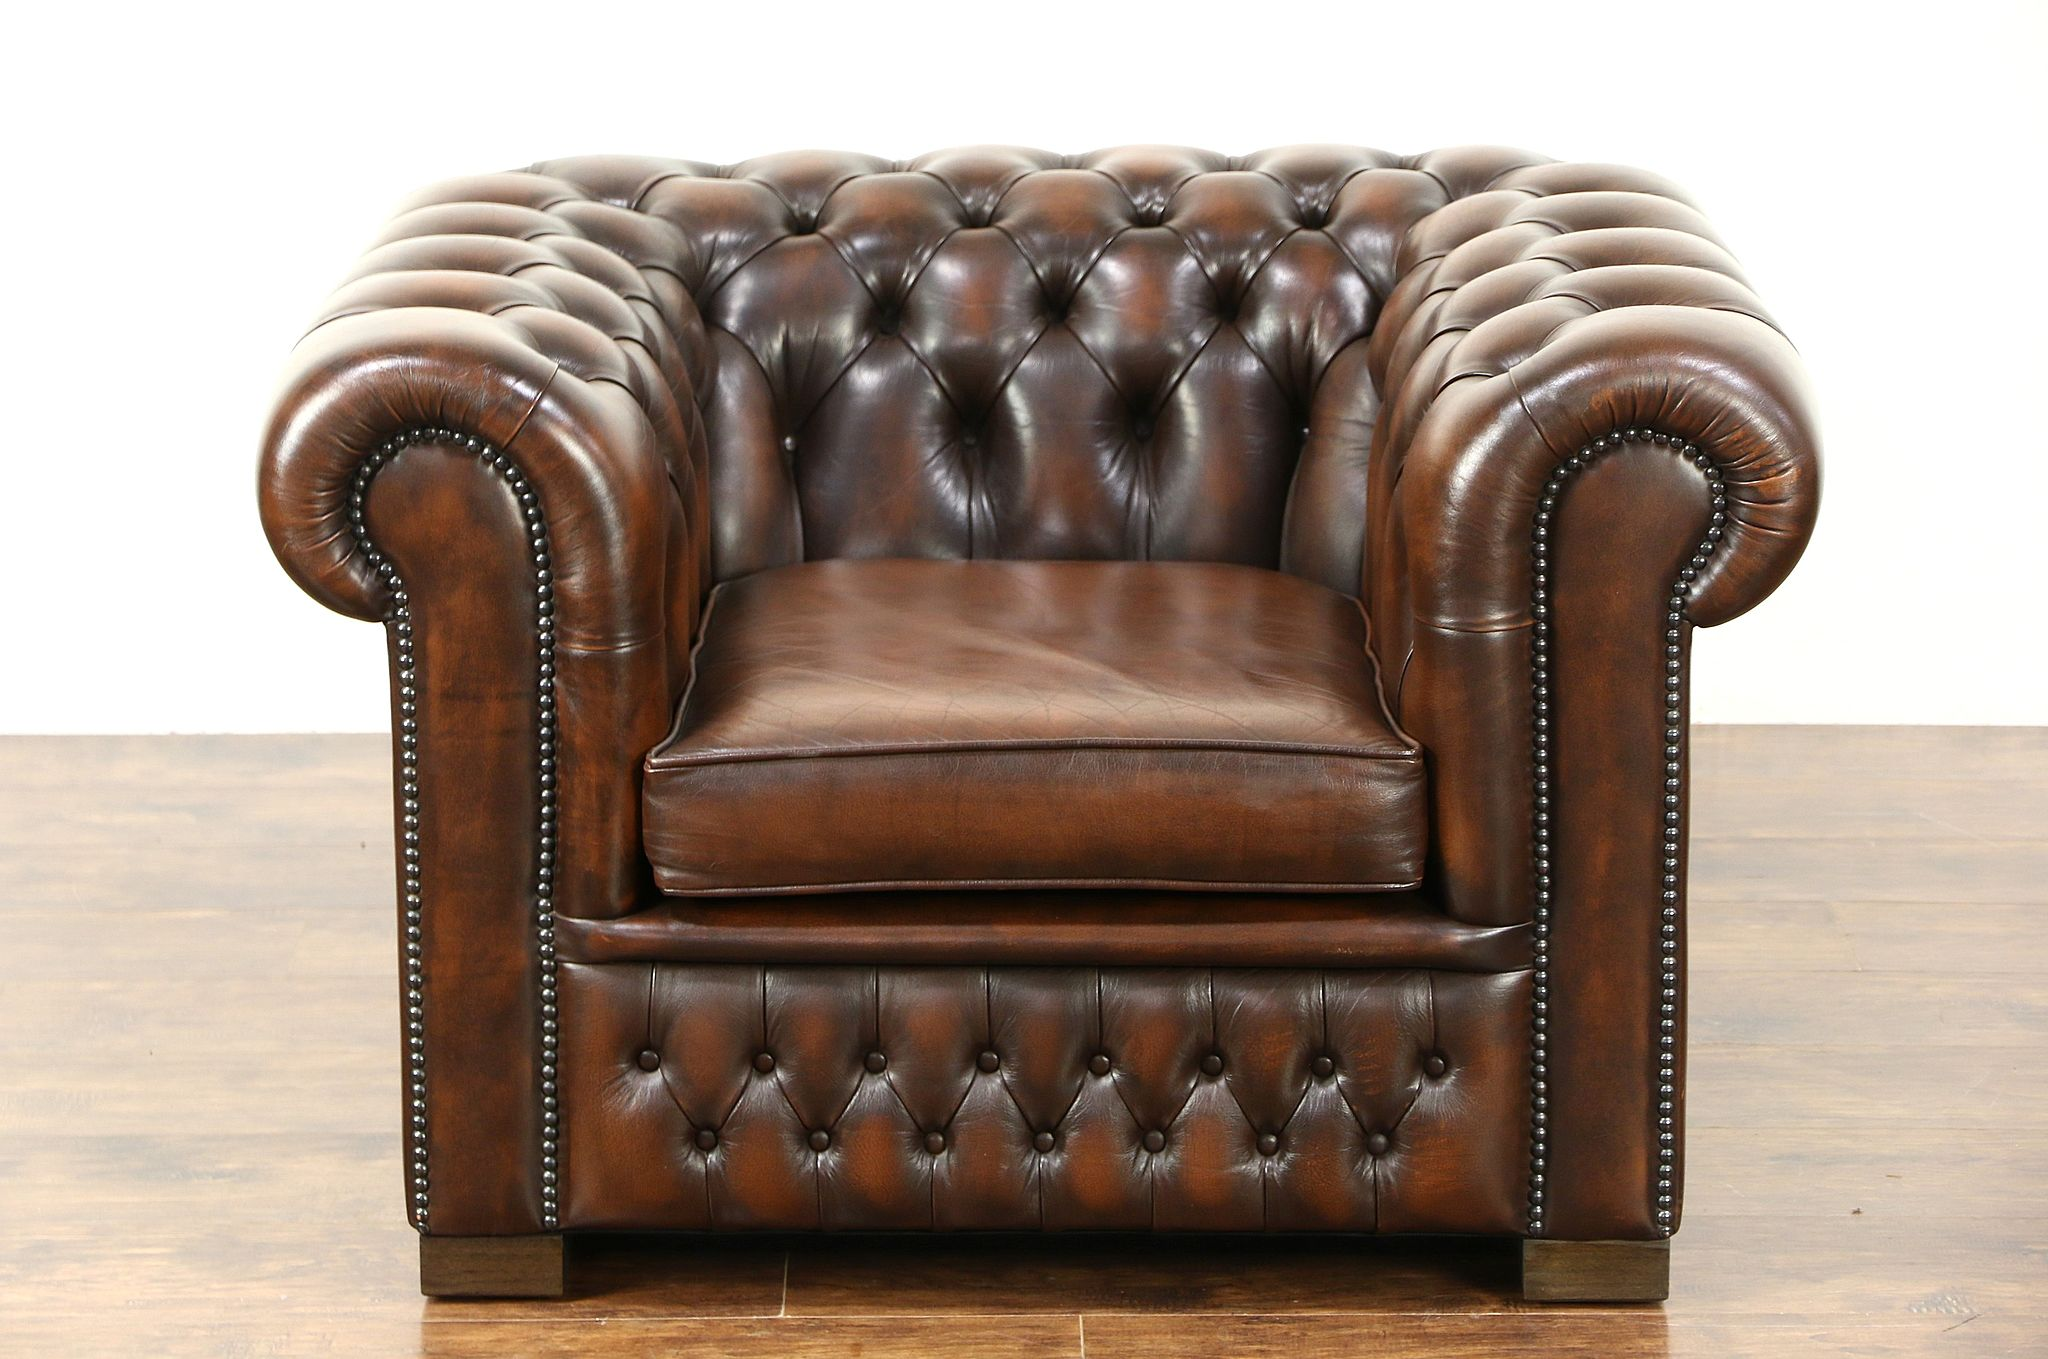 Brown Leather Chairs Chesterfield Tufted Brown Leather Vintage Scandinavian Tub Chair